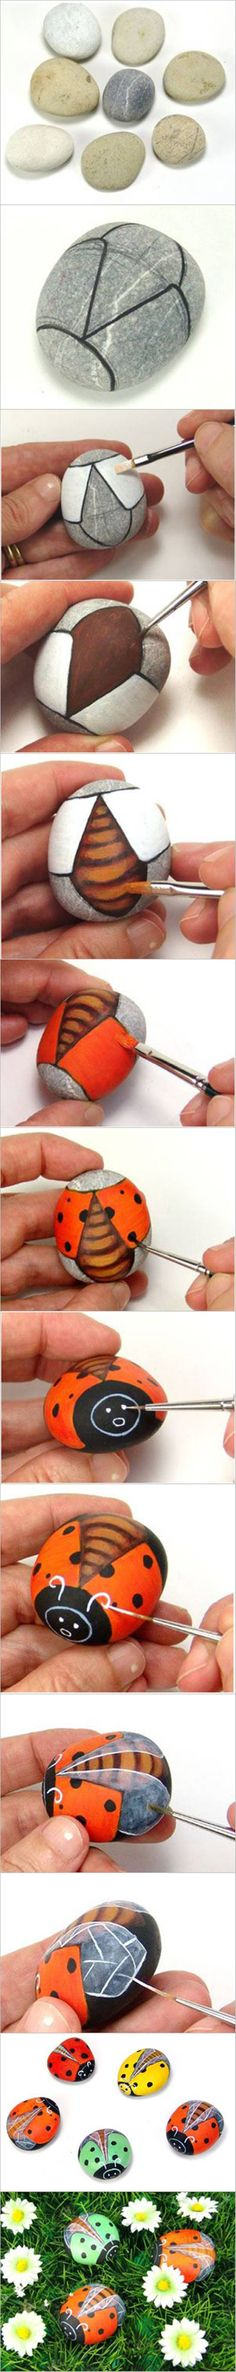 How to DIY Painted Pebble Ladybugs #craft #pebble #painting #ladybug